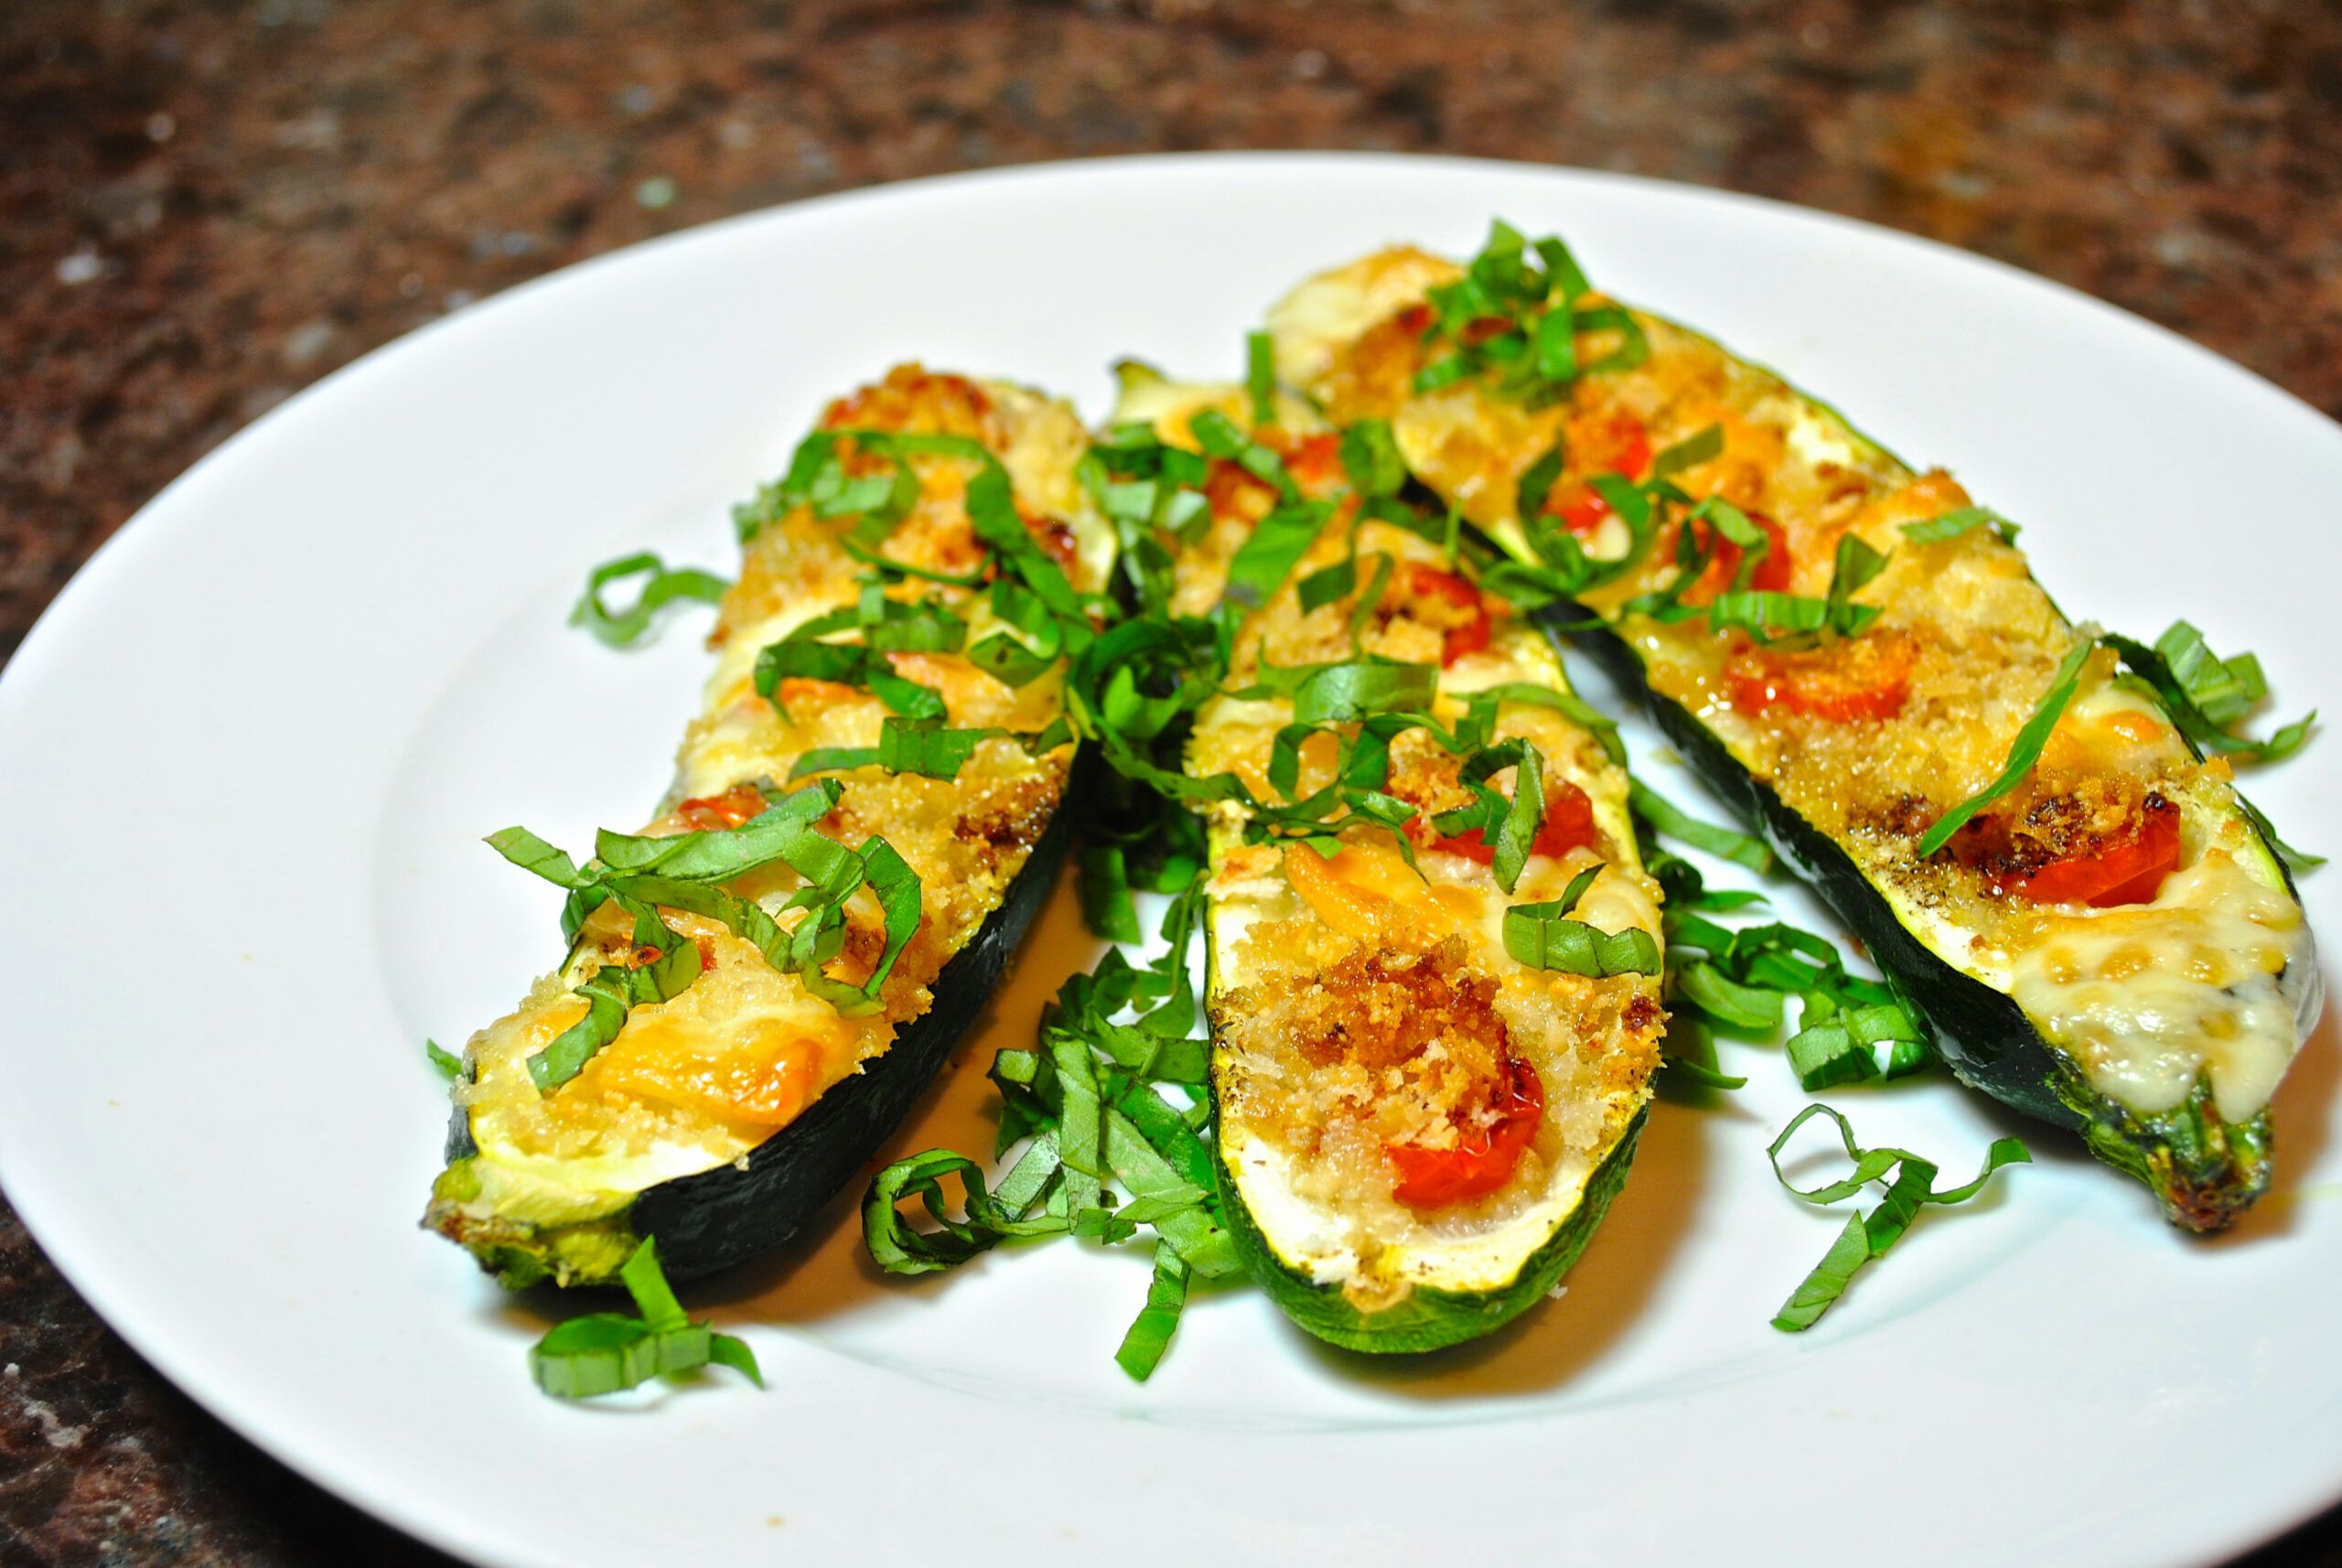 Healthy Recipes For Kids For Dinner For Two With Chicken ..